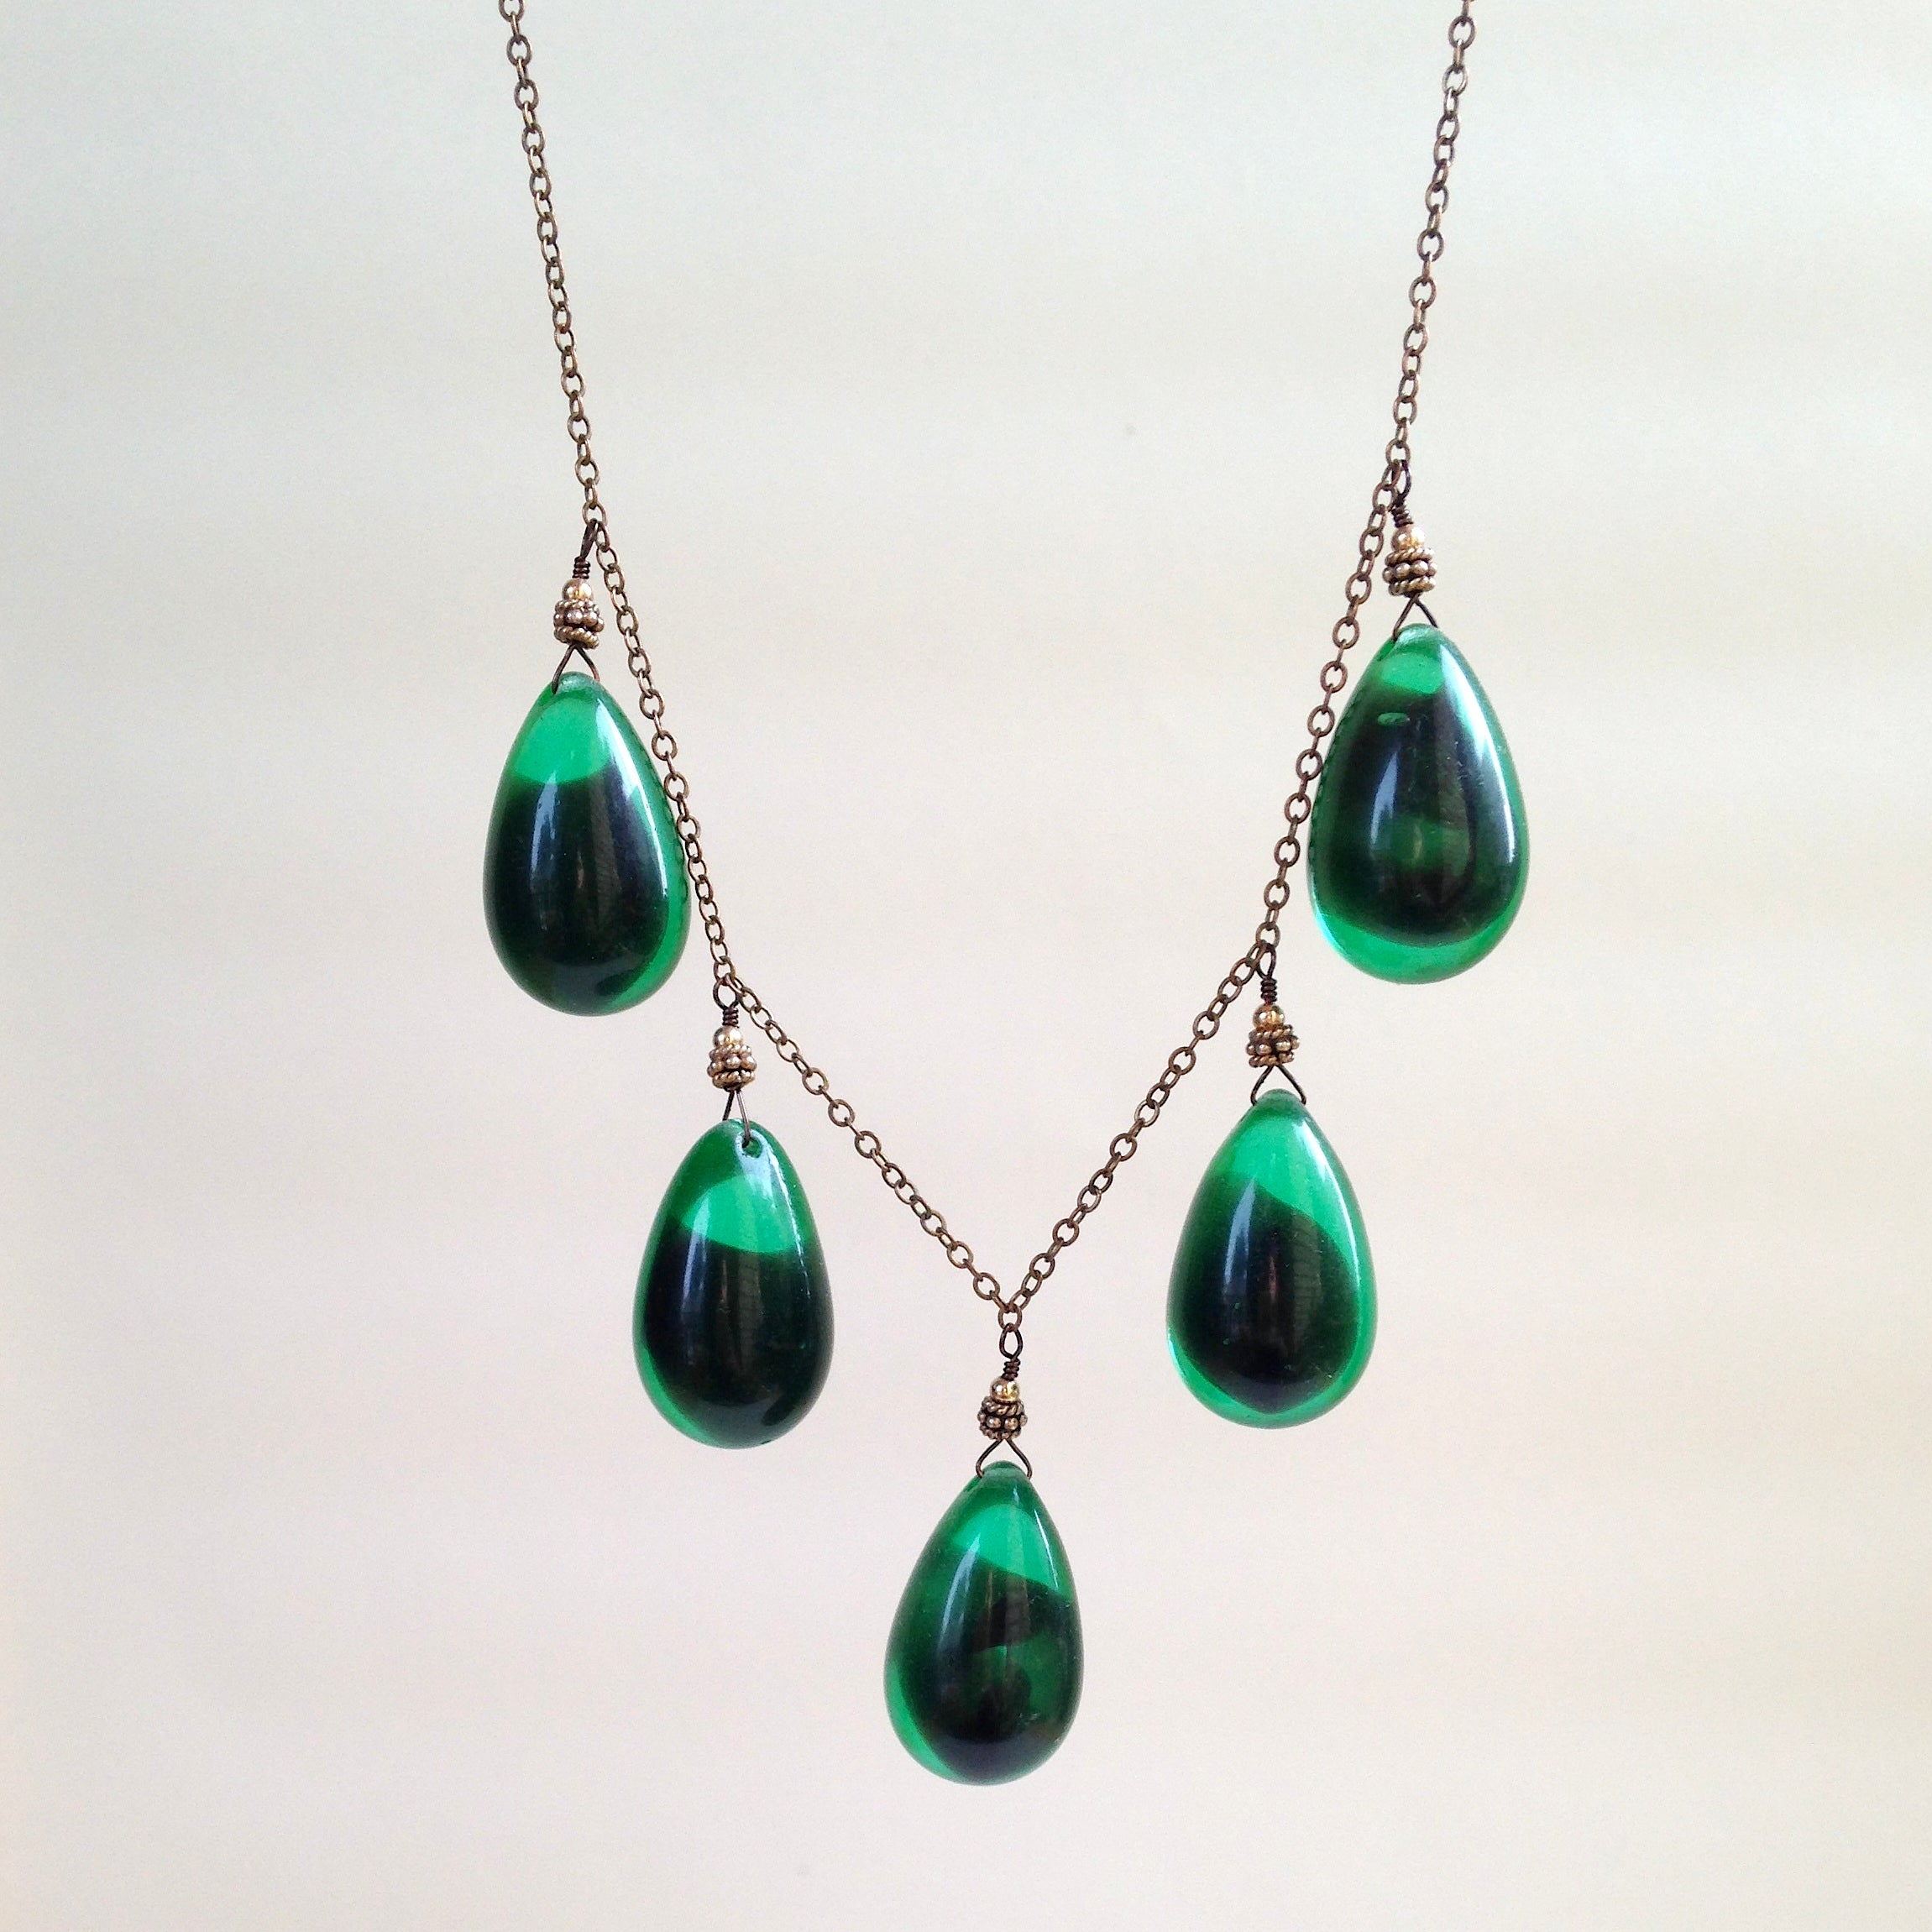 Emerald Drop Necklace  Mollie Earls Jewelry. Ladies Necklace. Solid Rose Gold Anklet. Asscher Rings. Heart Shaped Earrings. Moissanite Earrings. Girlfriend Rings. Vintage Necklace Pendant. Sterling Silver Beads